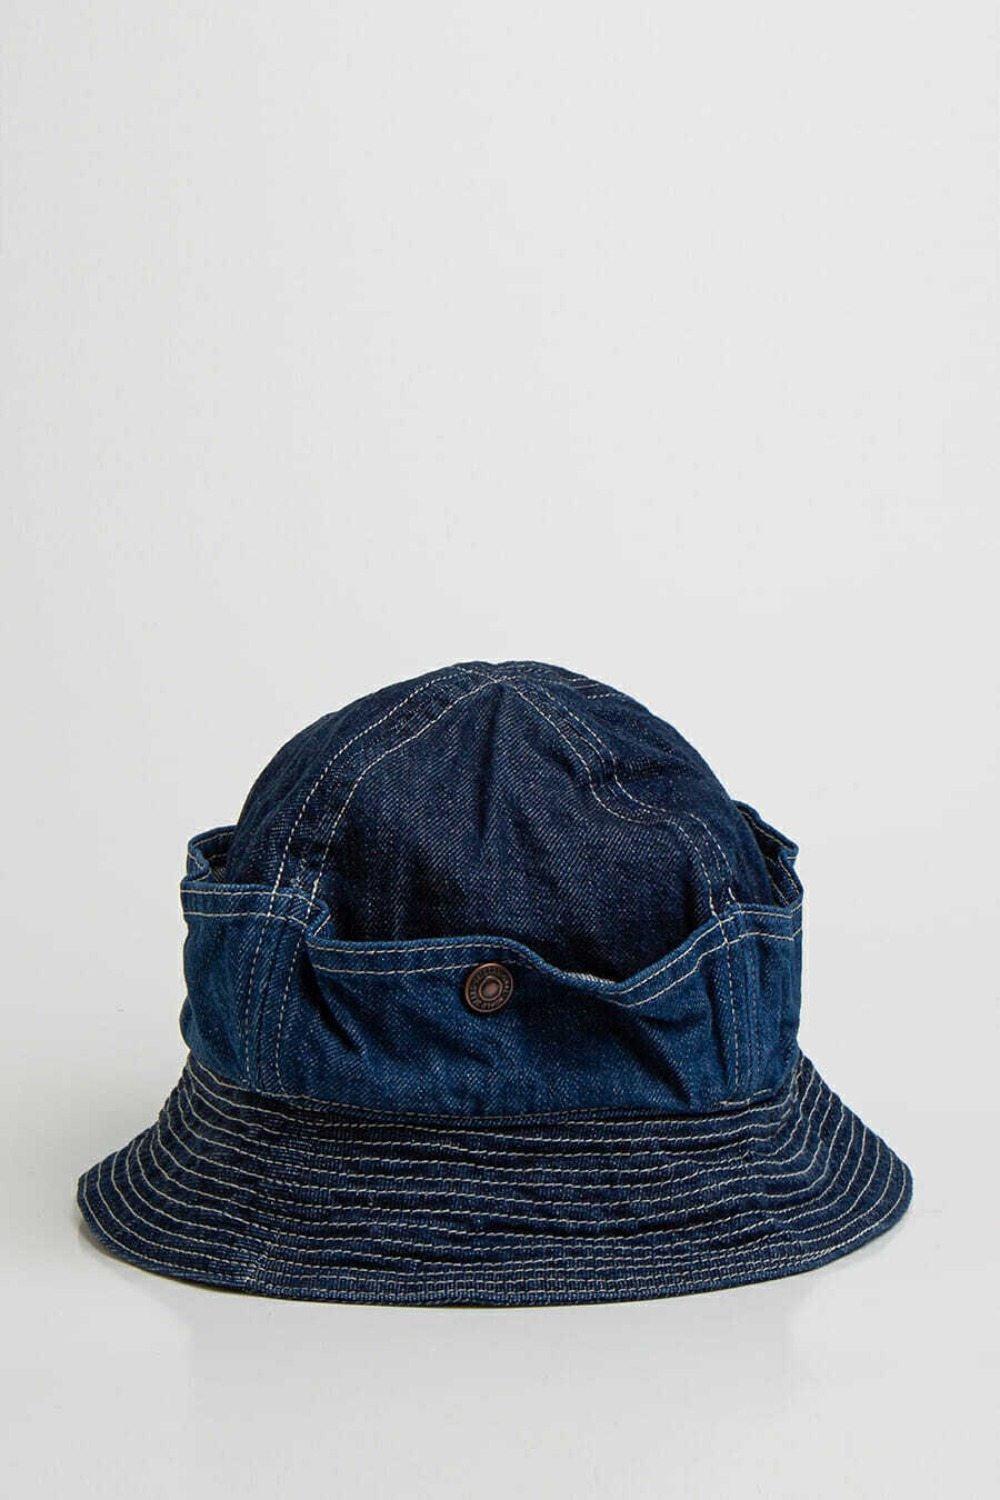 11.5OZ DENIM BUSH HAT(EK-877) INDIGO